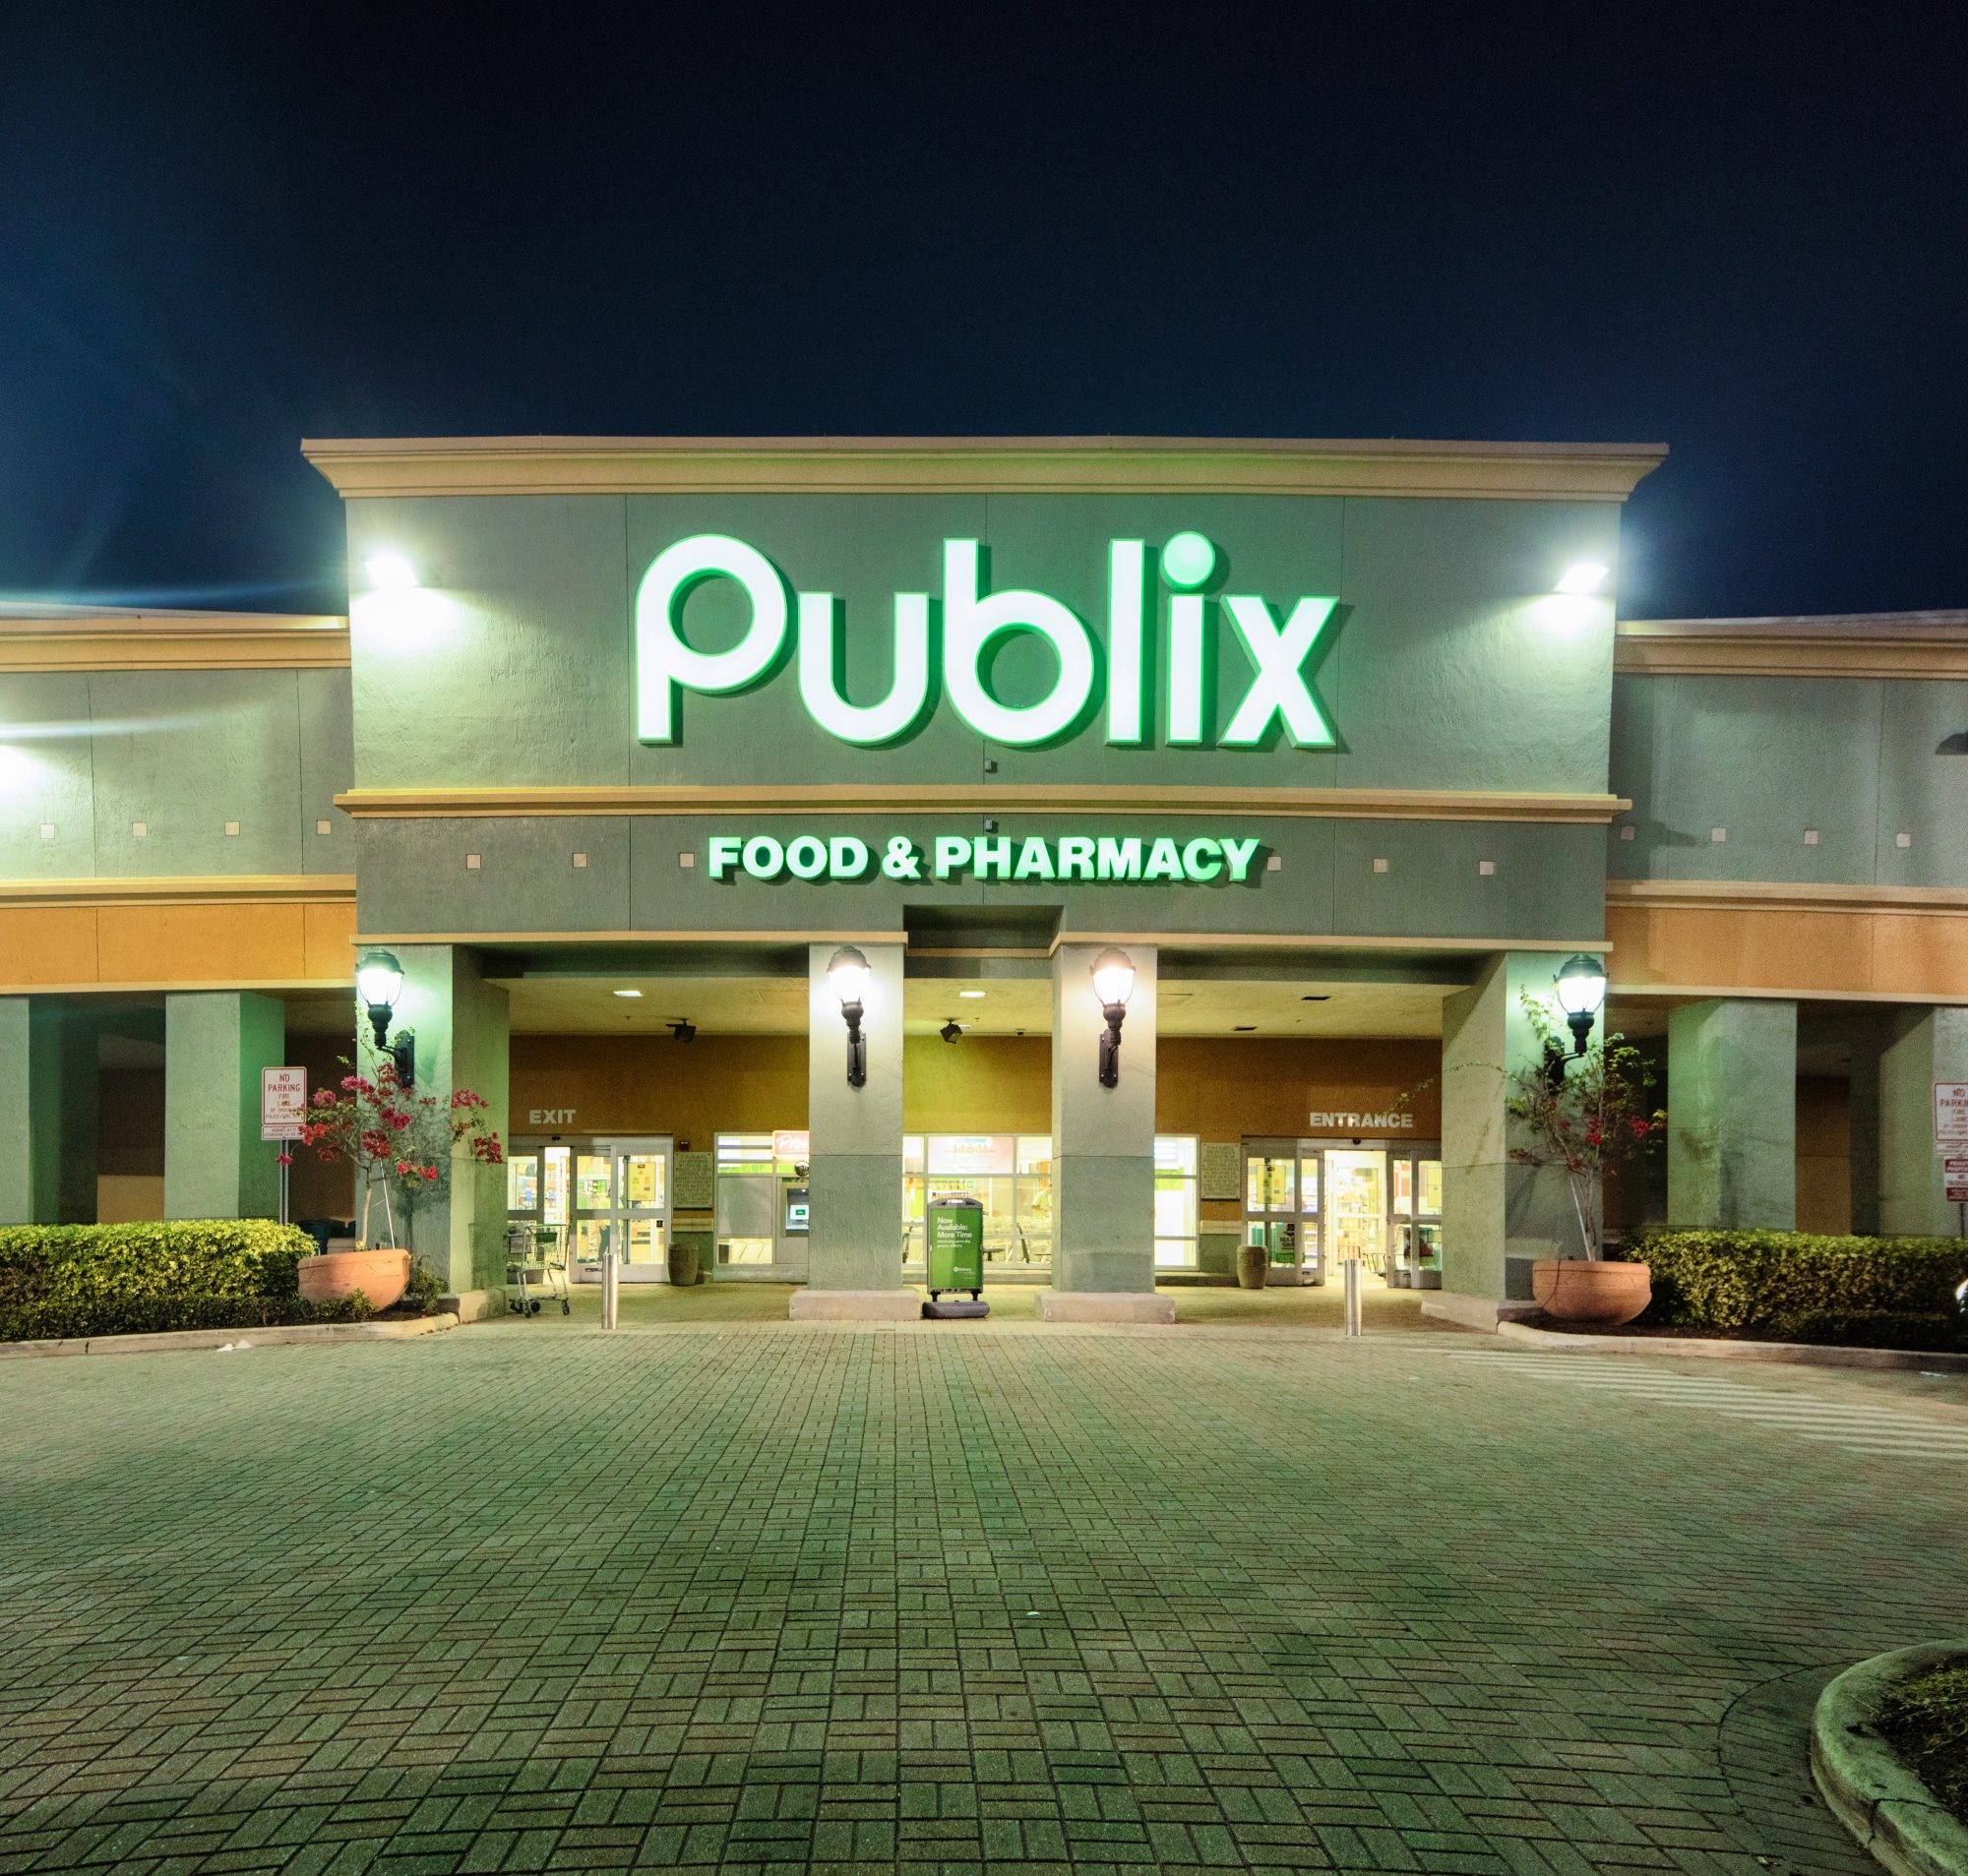 publix at night